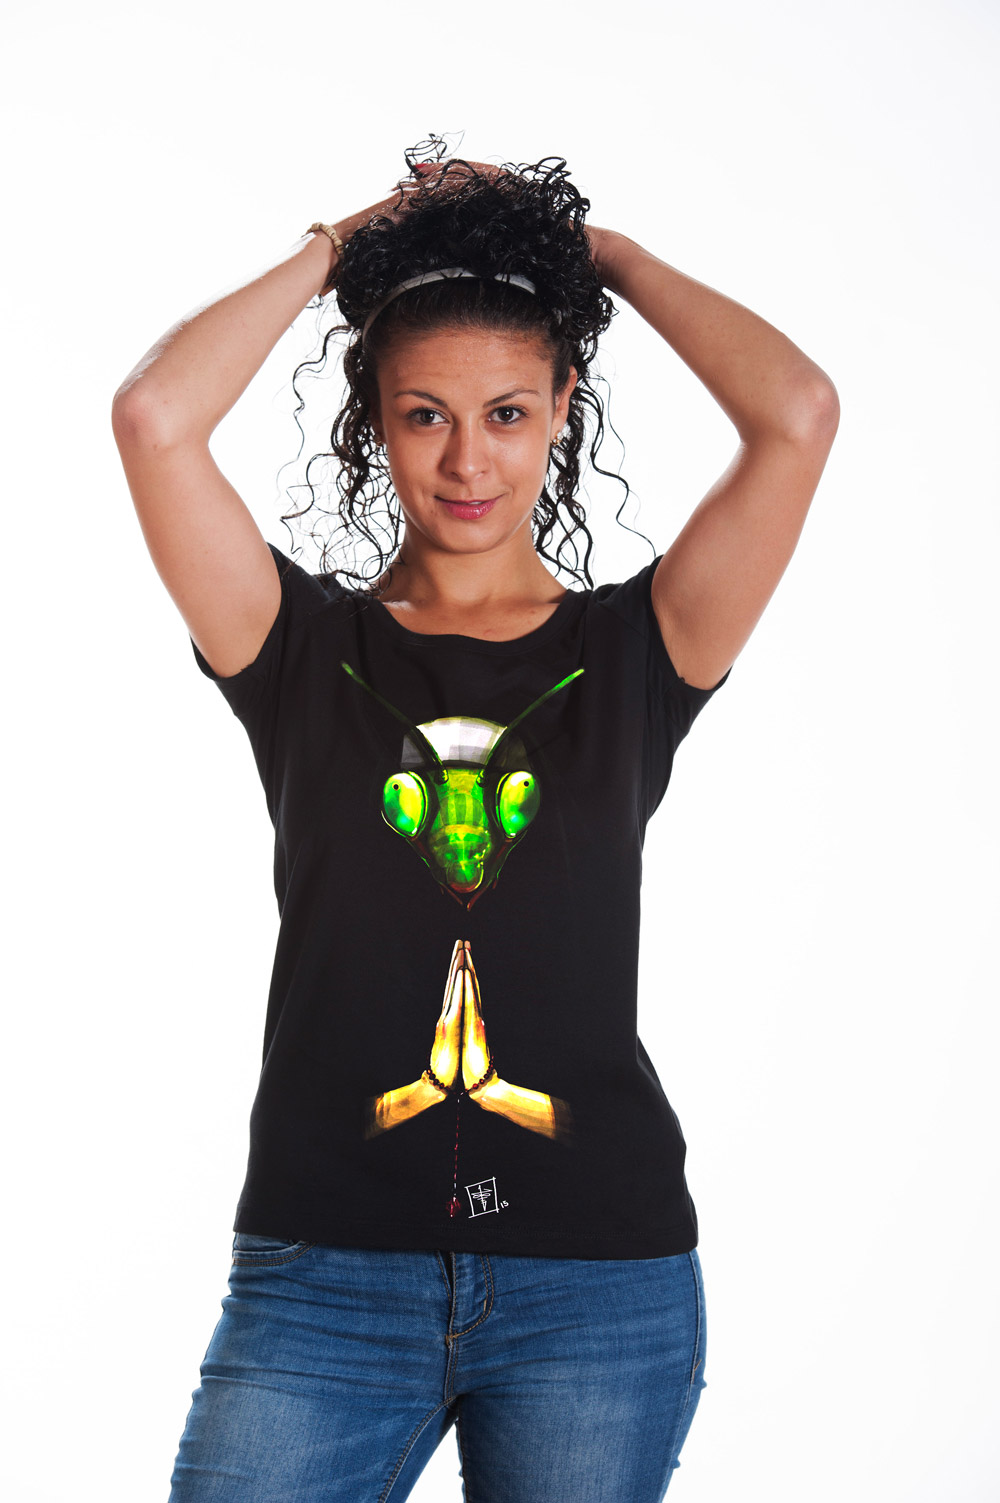 Praying Mantis 2 T shirt | Mythic Tee |  Mantis Tee | Unisex Shirt